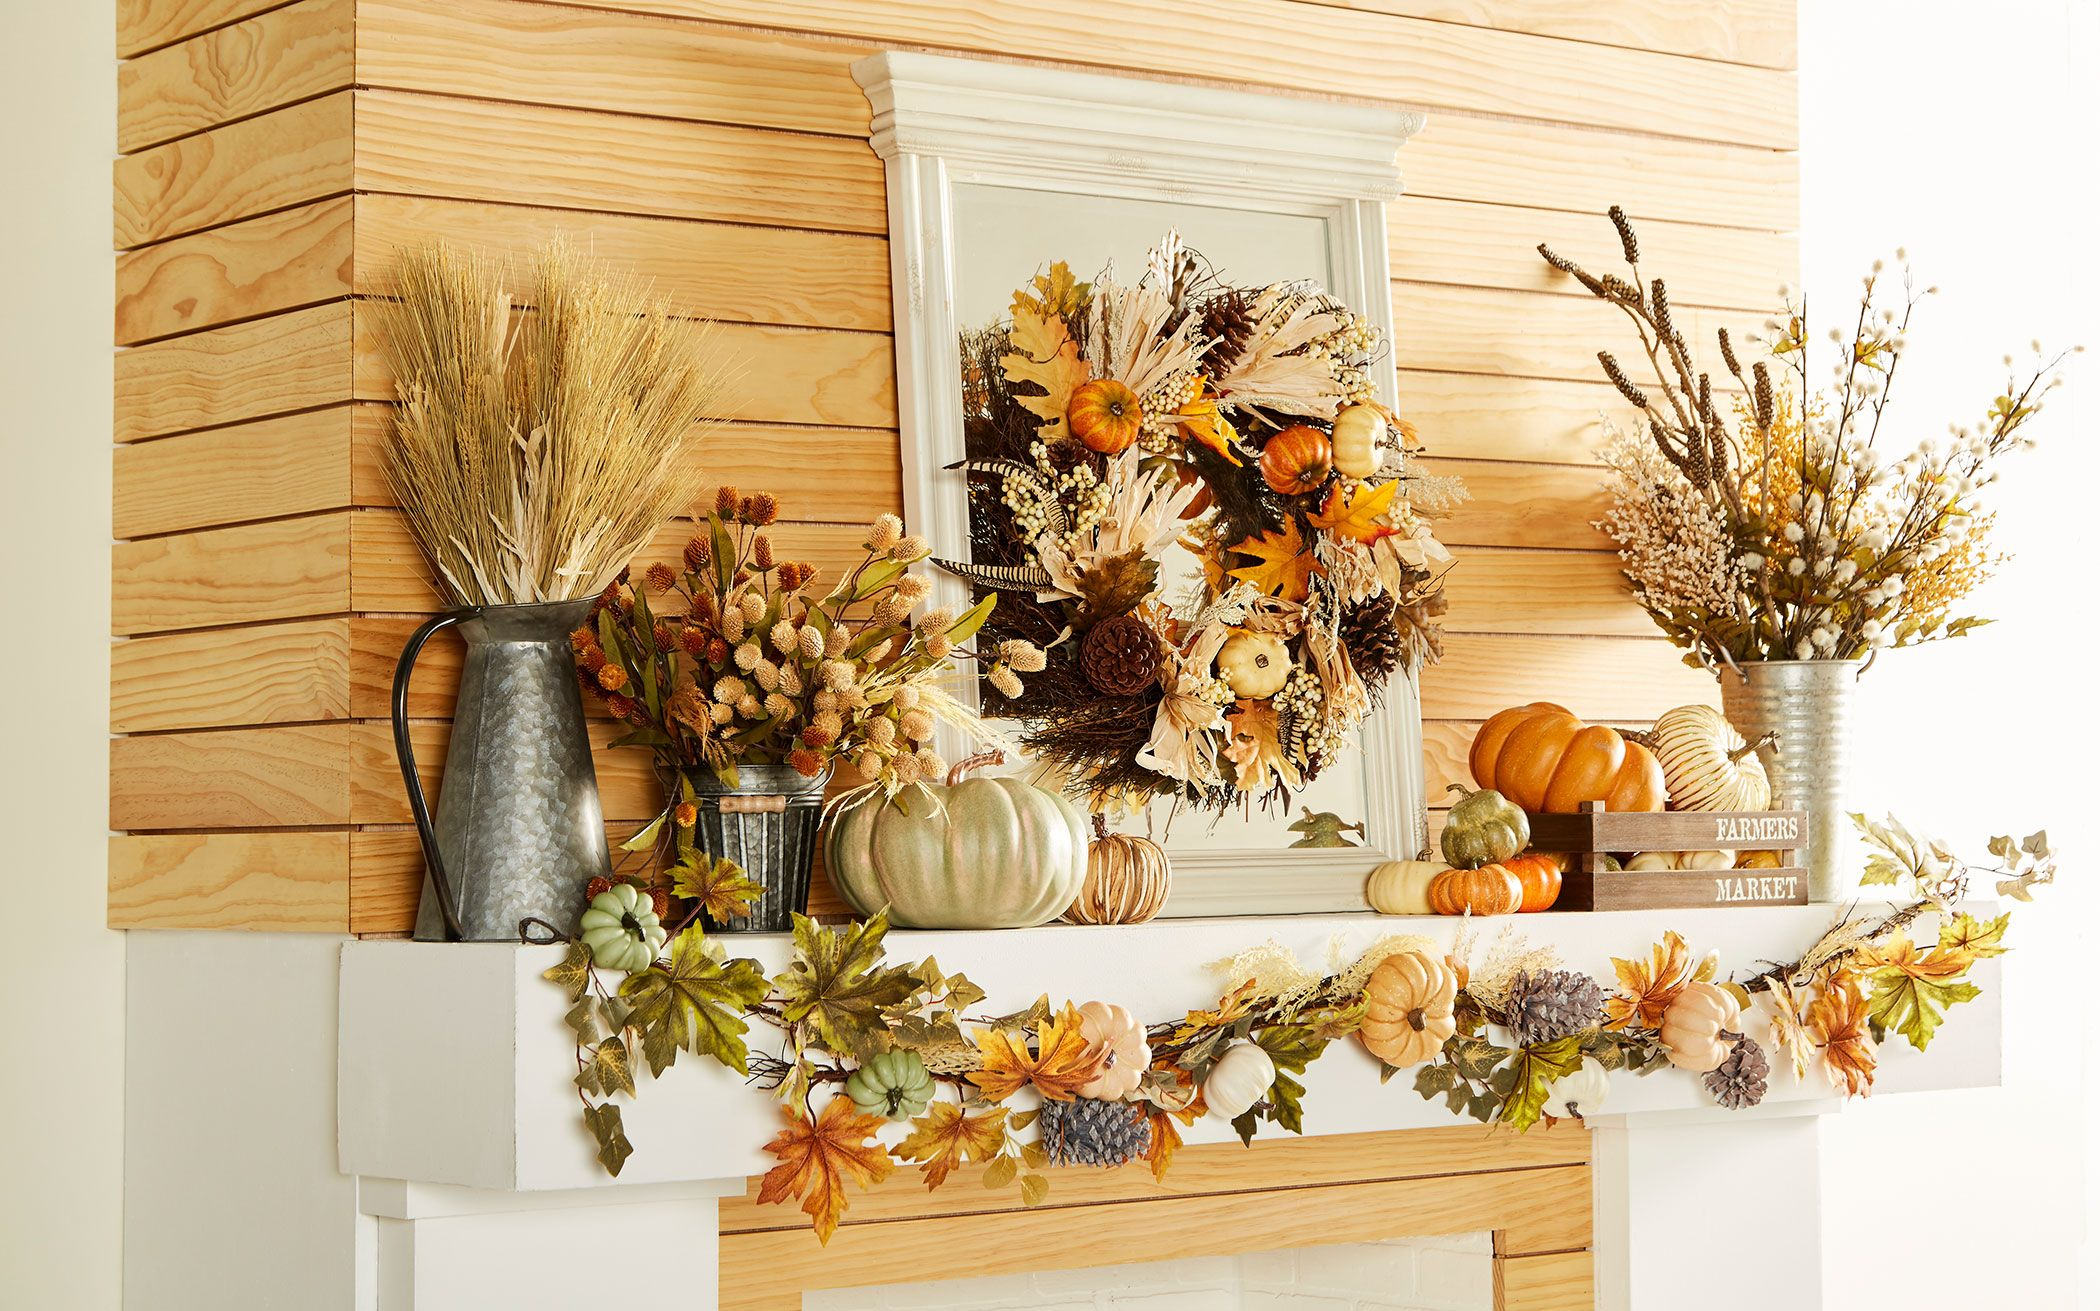 Michaels Fall Decor Decorating Ideas For The Mantel Table And Outside